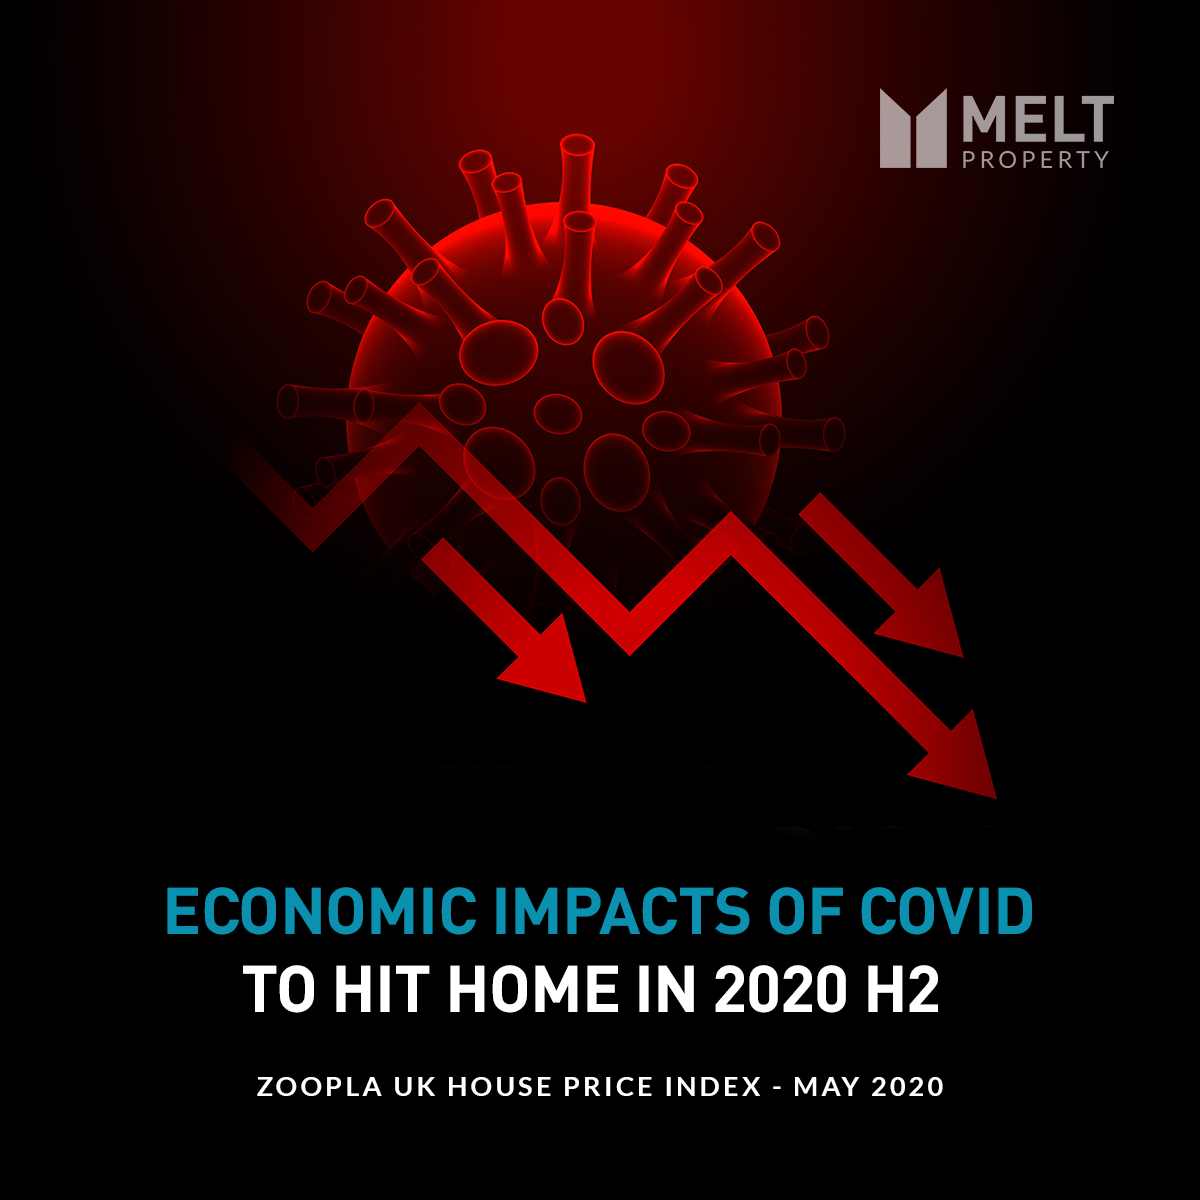 Economic impacts of COVID to hit home in 2020 H2